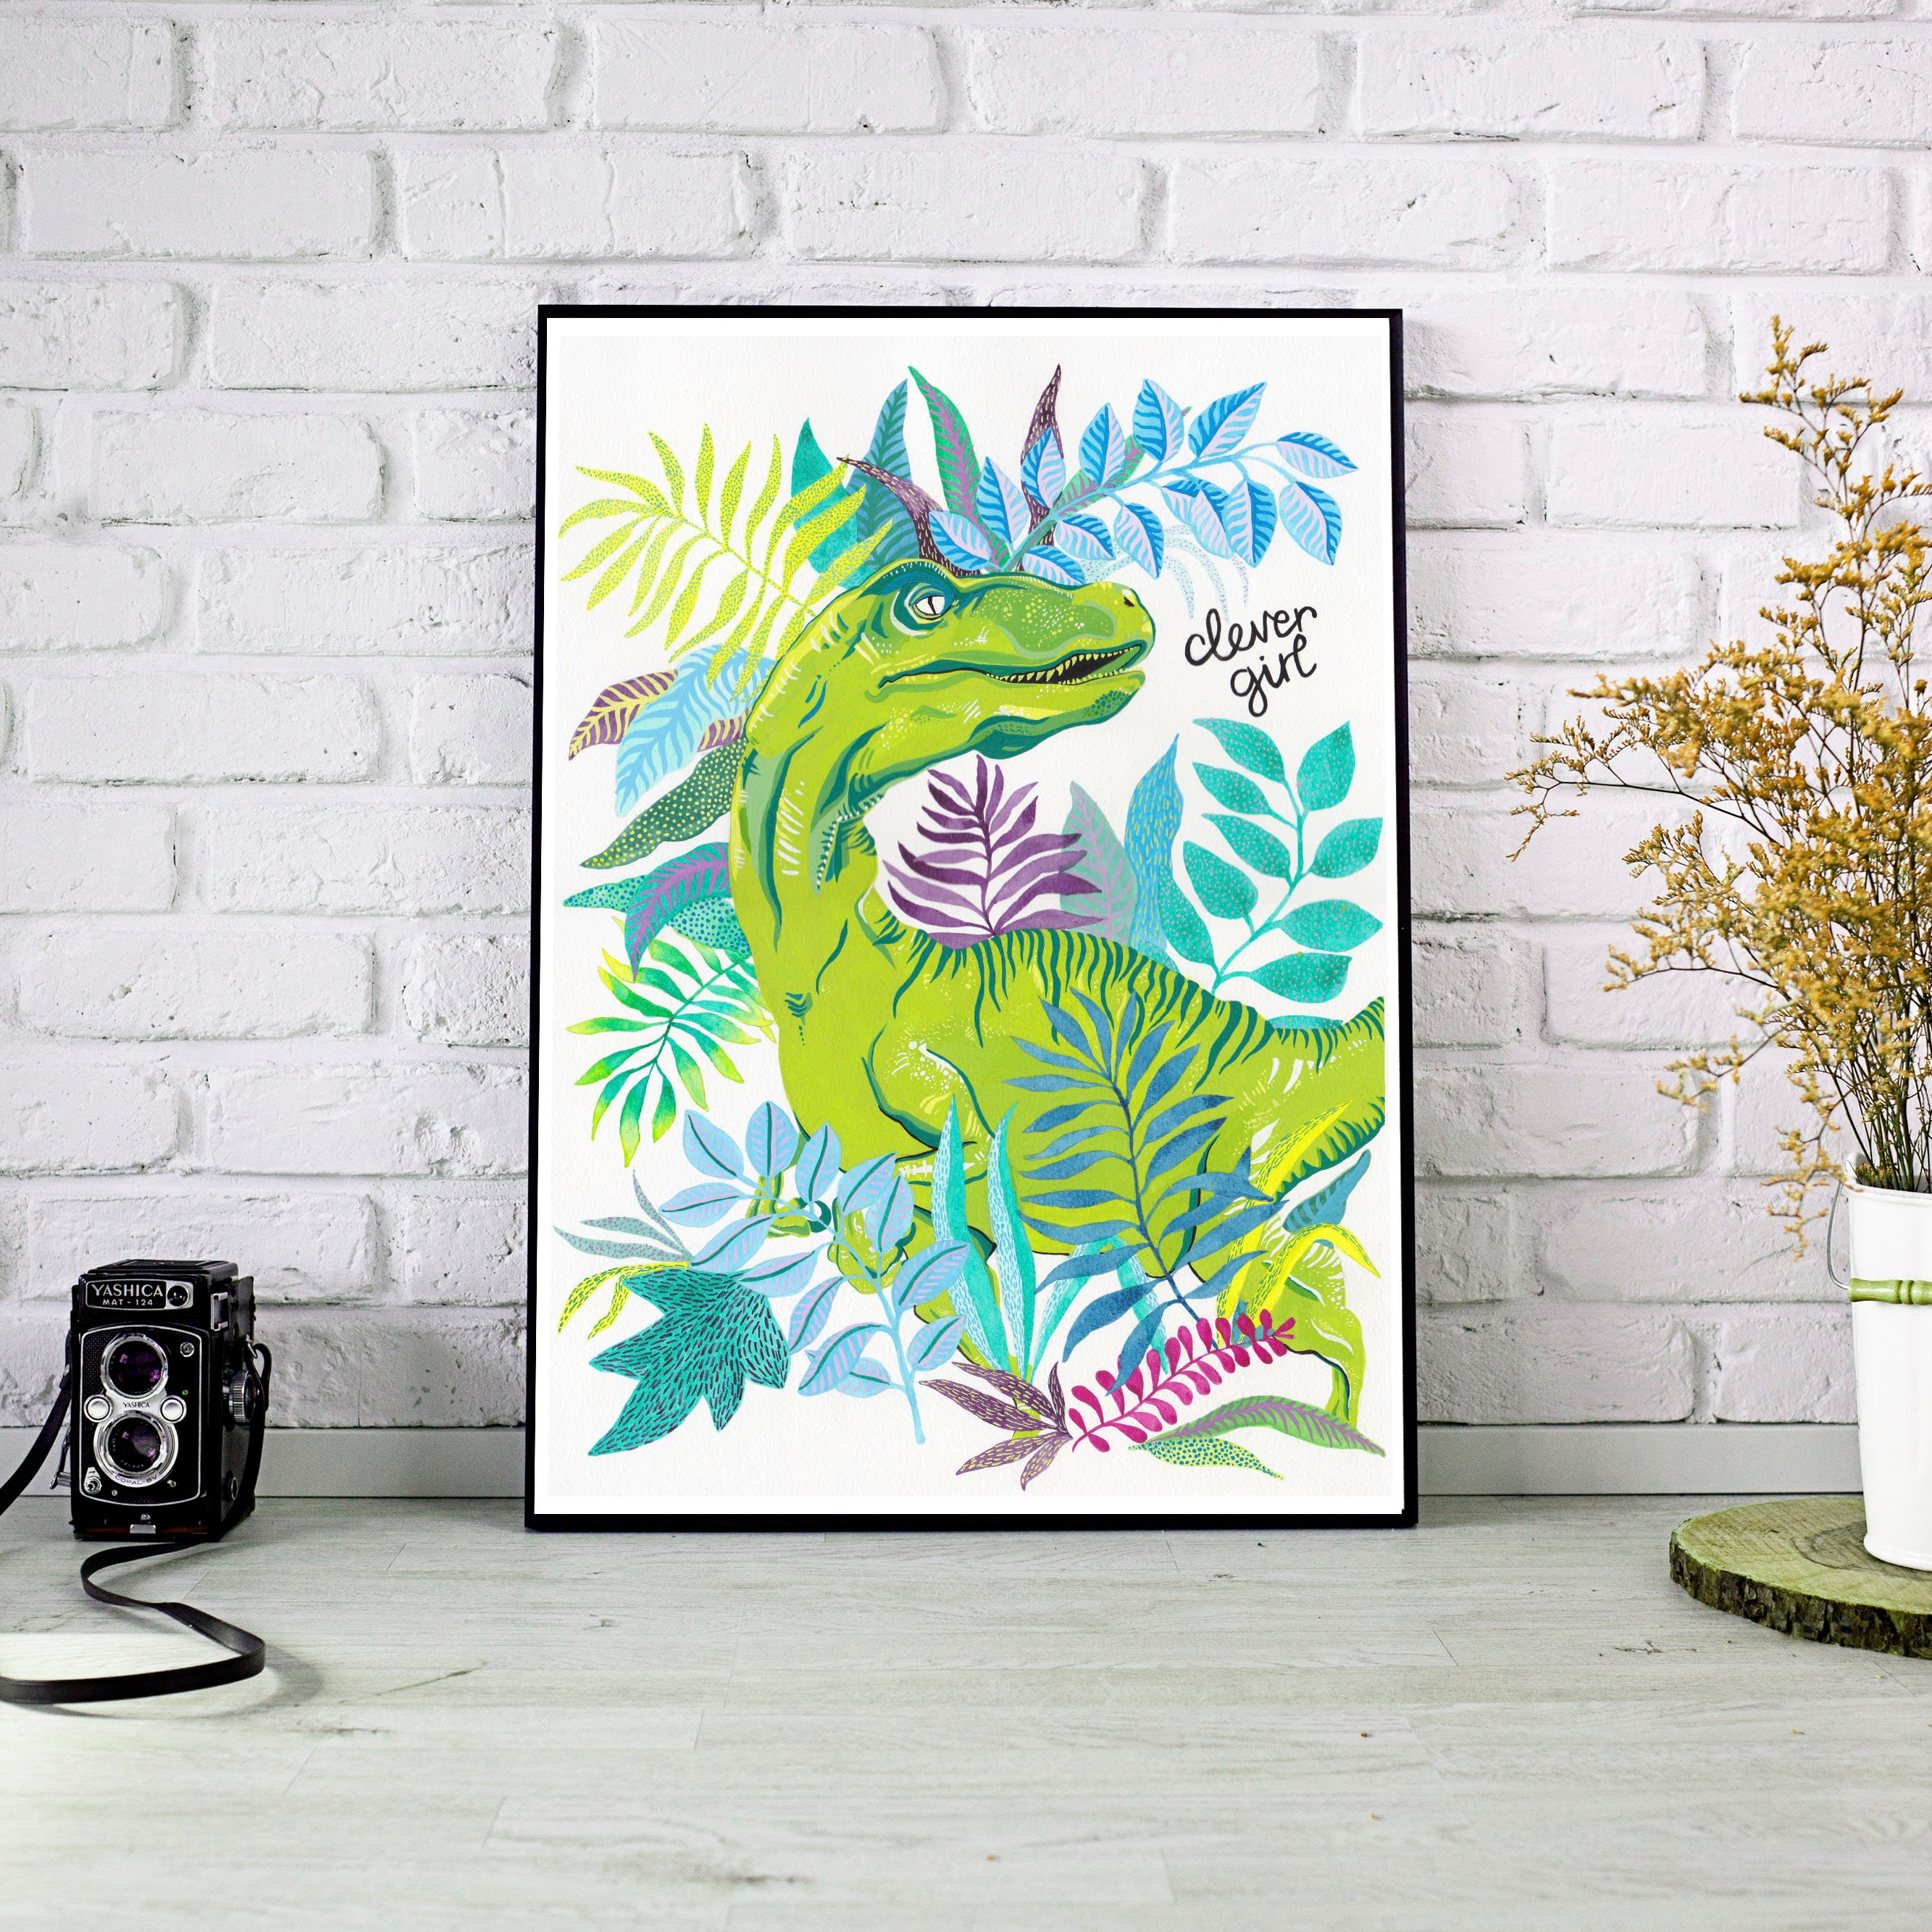 Clever girl velociraptor jurassic park dinosaur inspired quirky leafy hand drawn a4 a3 archival print poster wall art